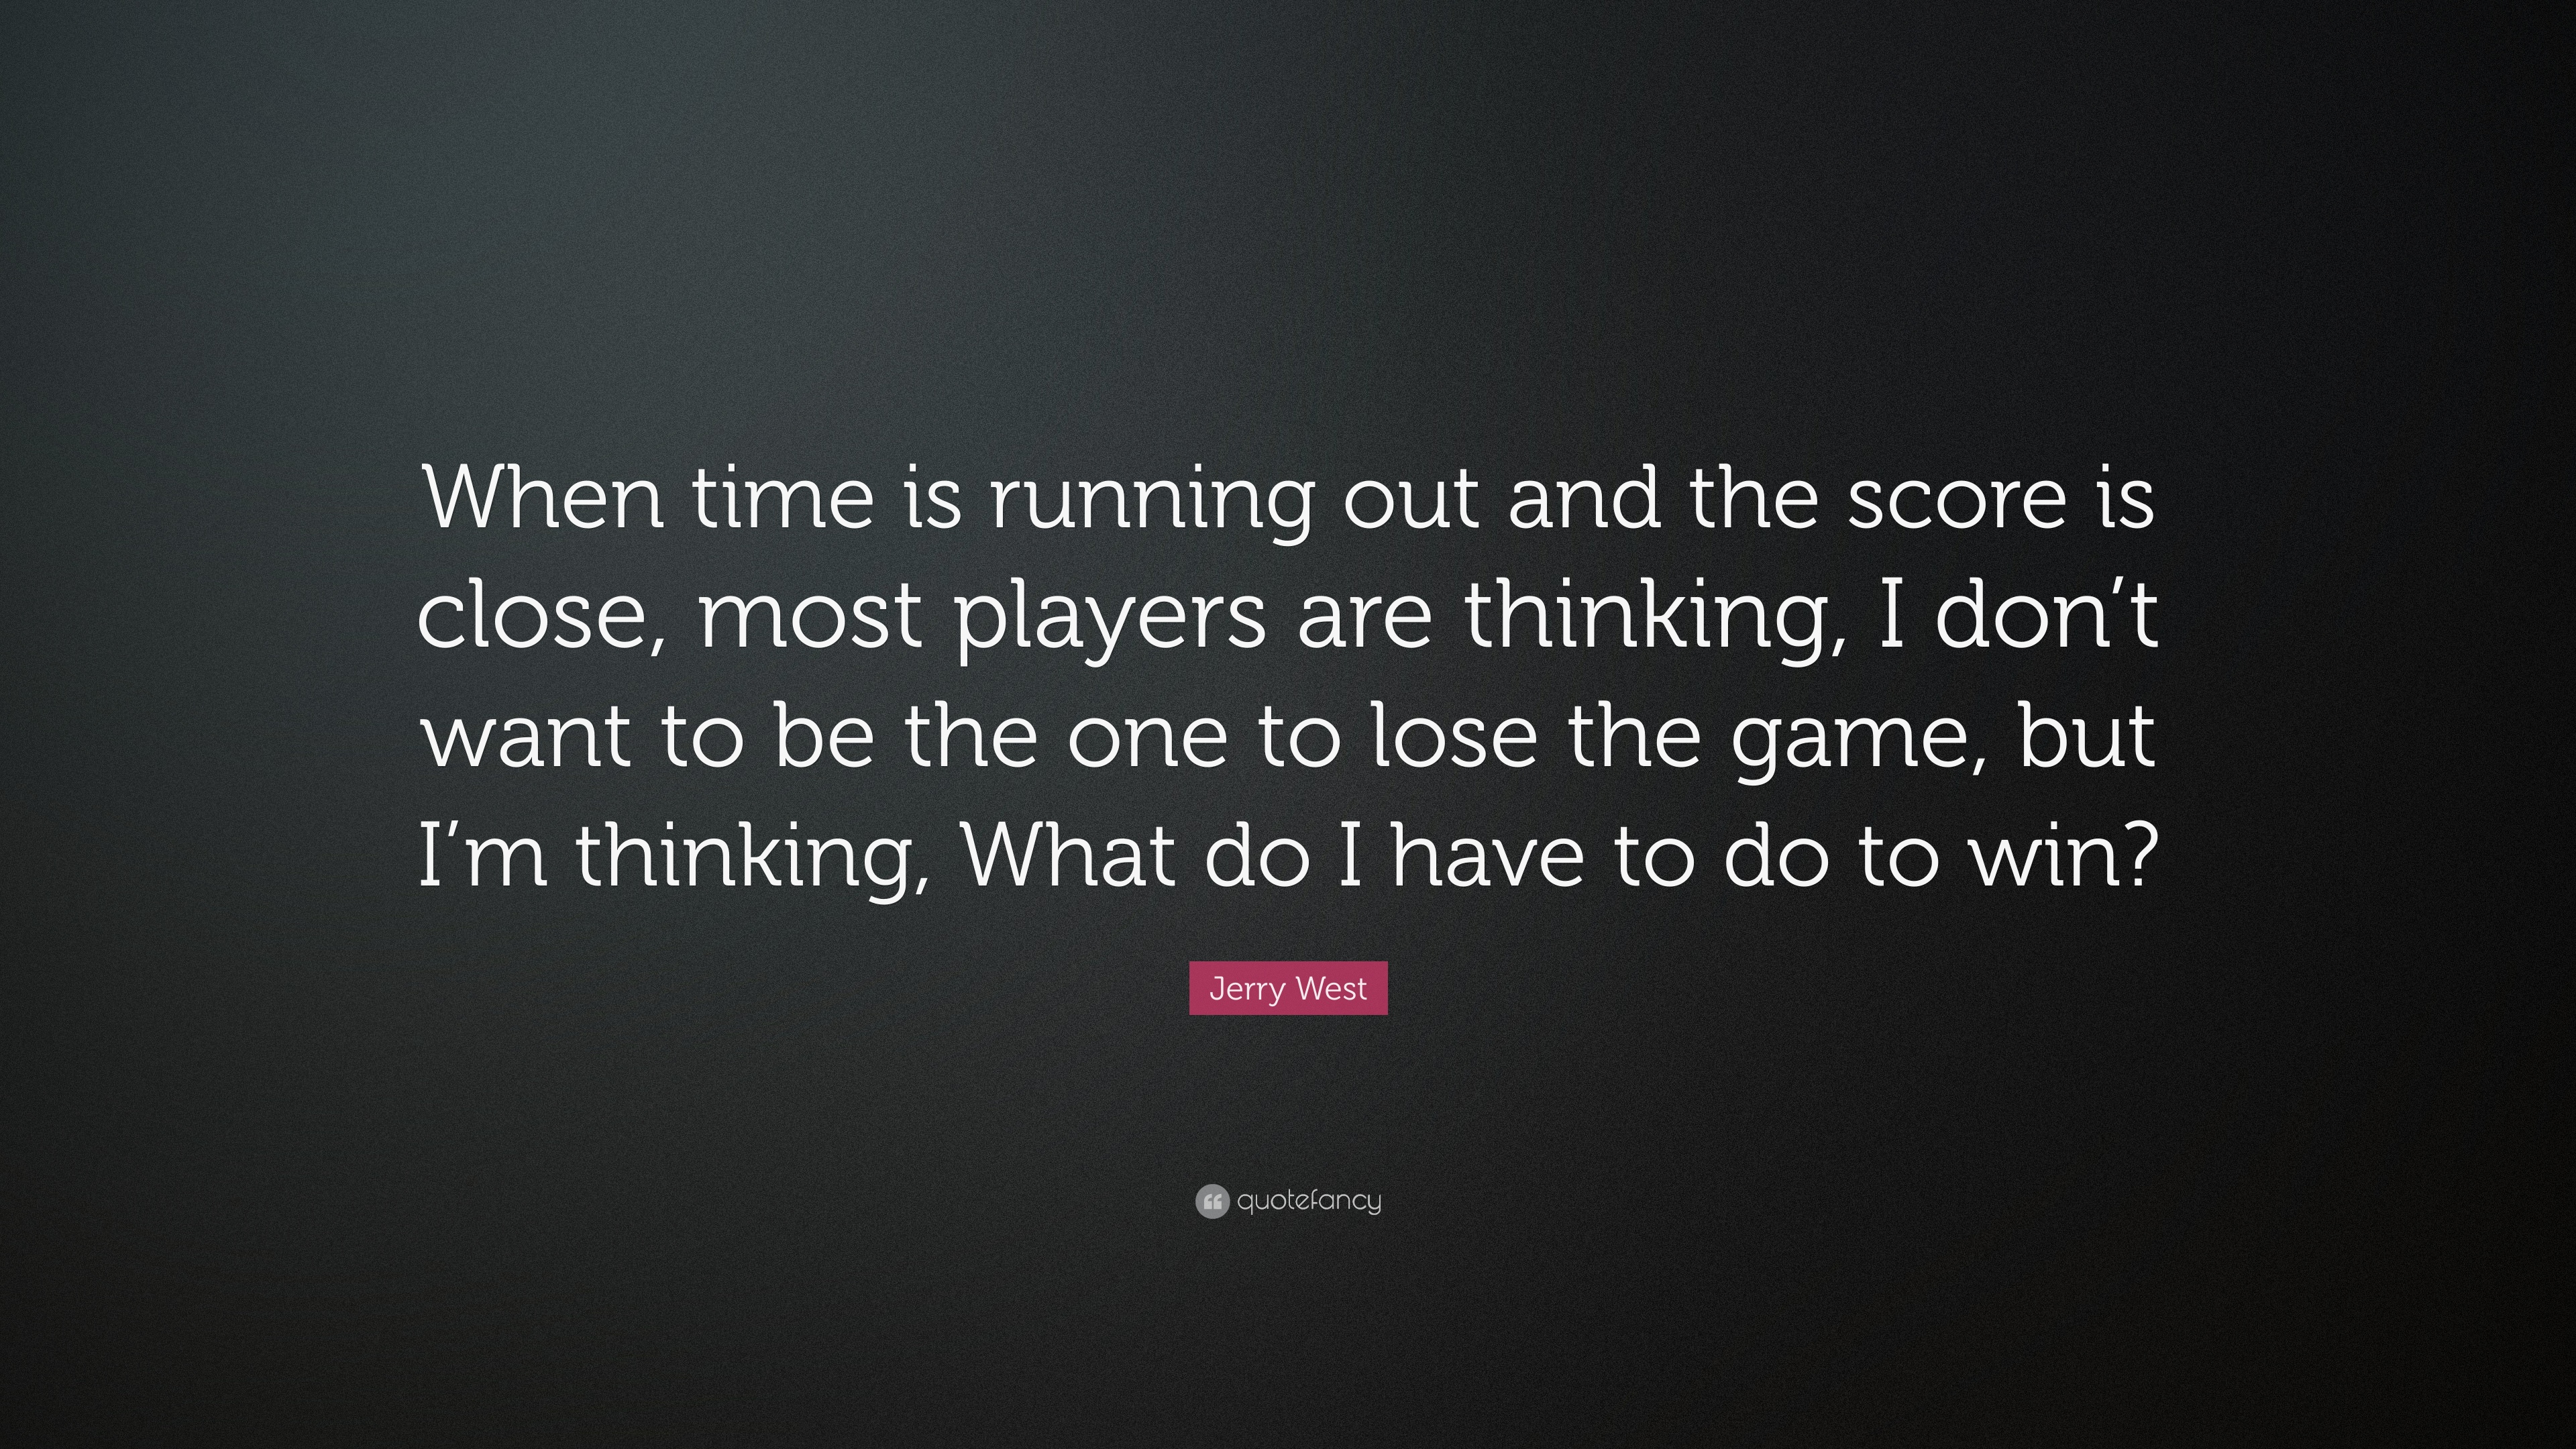 Jerry West Quote When Time Is Running Out And The Score Is Close